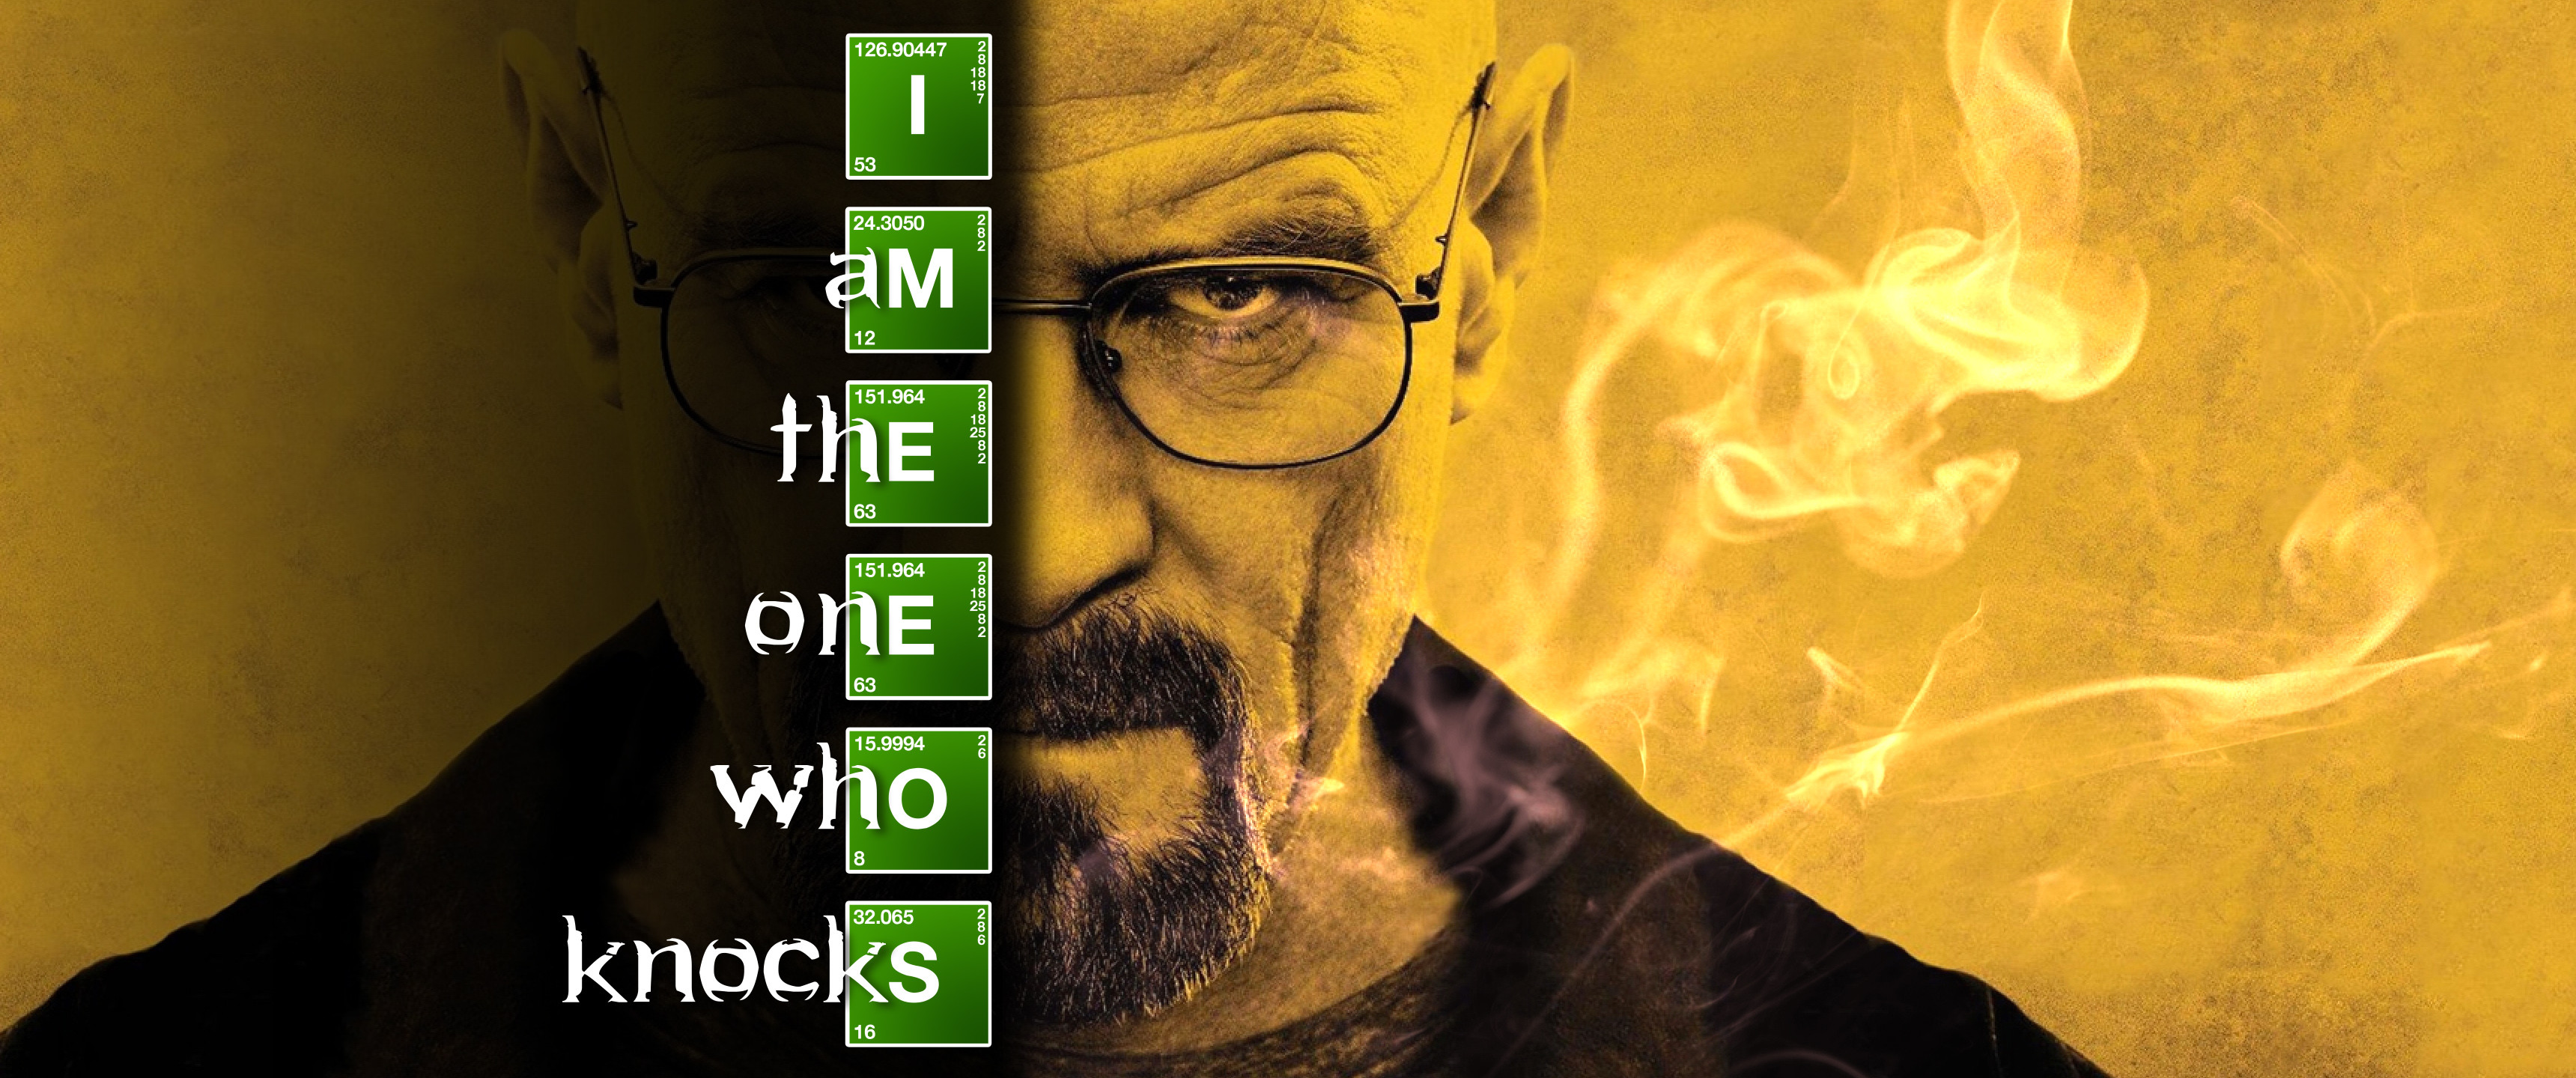 Breaking Bad Desktop Wallpaper 76 Images